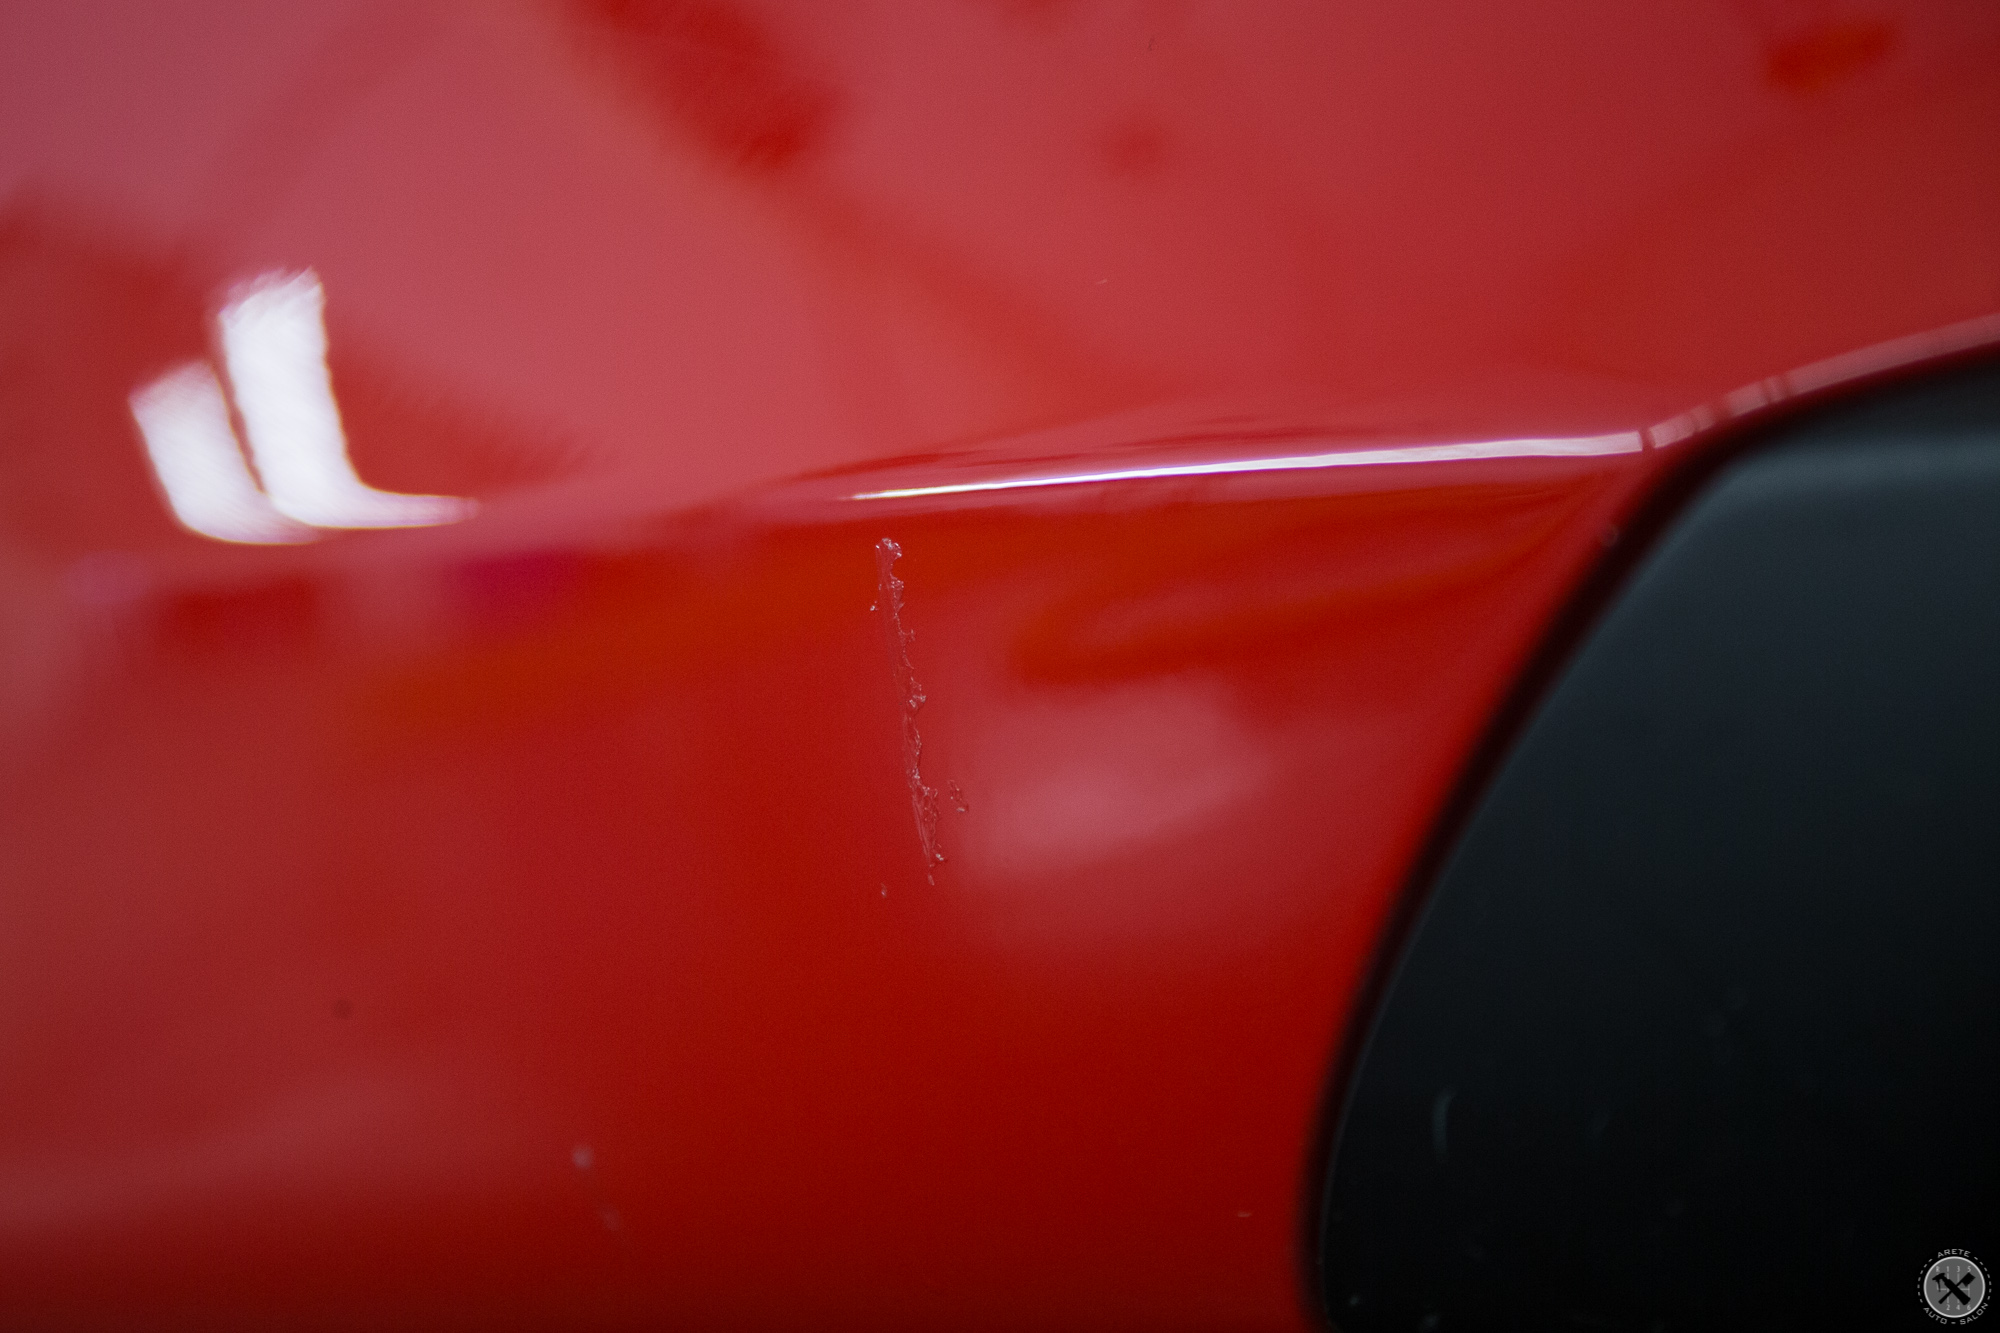 Prior to purchase, it was evident that paint protection film had previously been on the vehicle and was not totally removed.